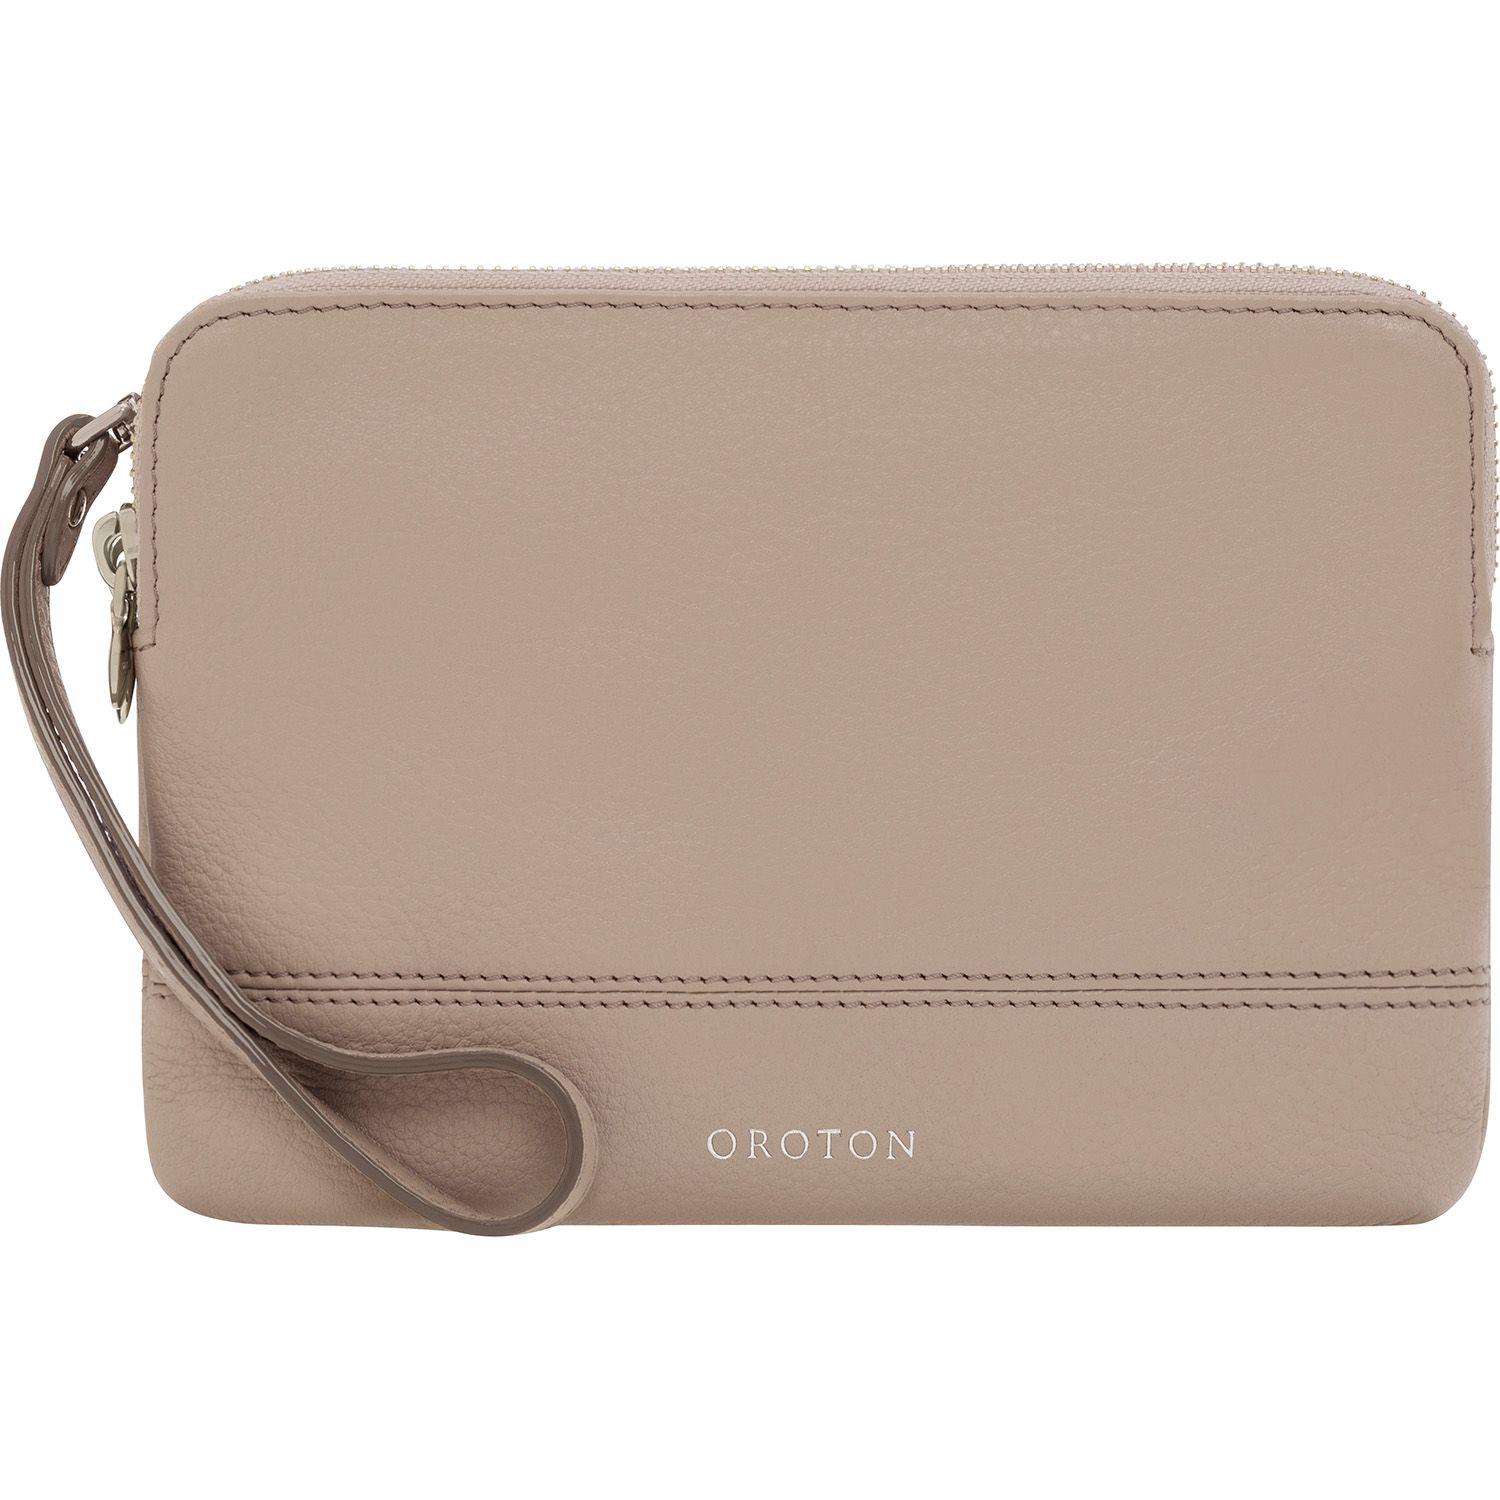 Oroton is an Australian luxury fashion accessories company known for its leather handbags. Oroton is owned by the OrotonGroup which is listed on the Australian Stock Exchange and held the licence for the Polo Ralph Lauren brand in Australia and New Zealand from